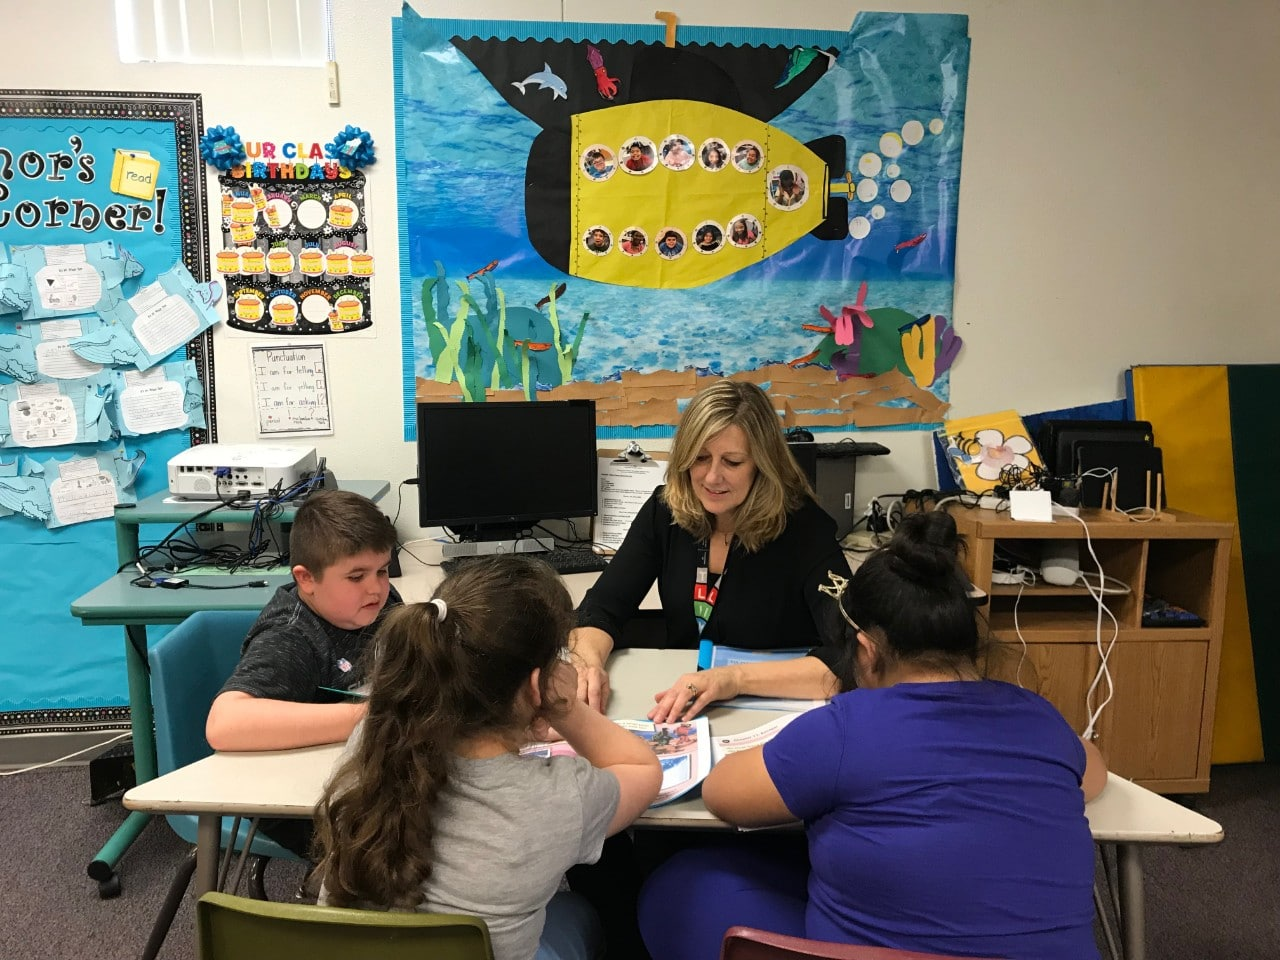 Patti Hummel working with her students in the classroom